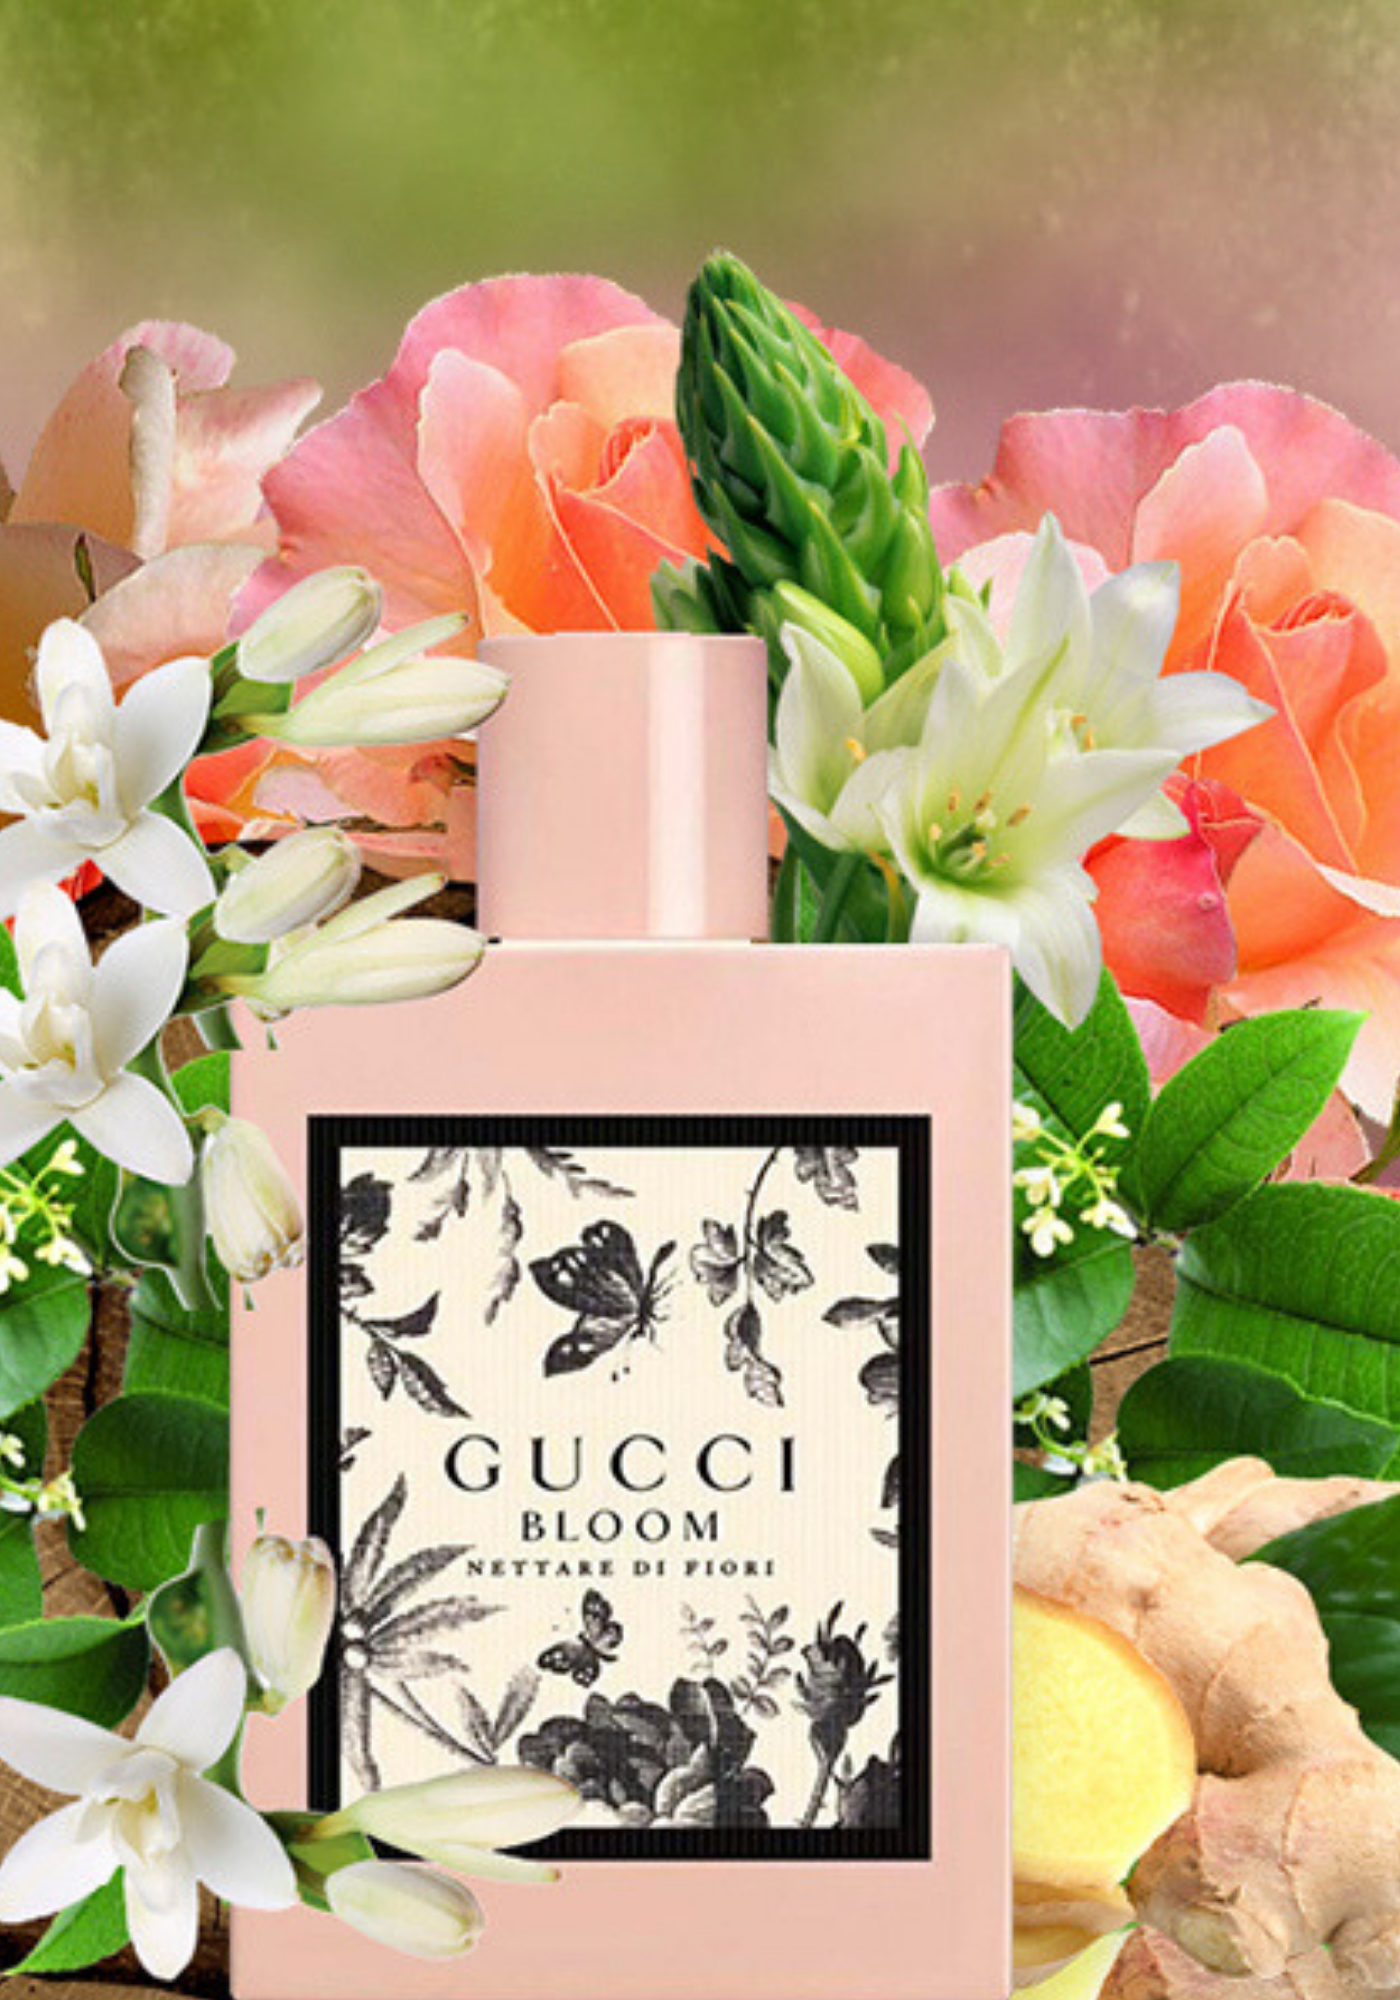 Gucci Bloom Is A Fresh Aromatic Garden In A Bottle The Perfume Released In 2017 Is A Gorgeous Blend Of Romantic Scents Fo Bottle Garden Fragrance Perfumery